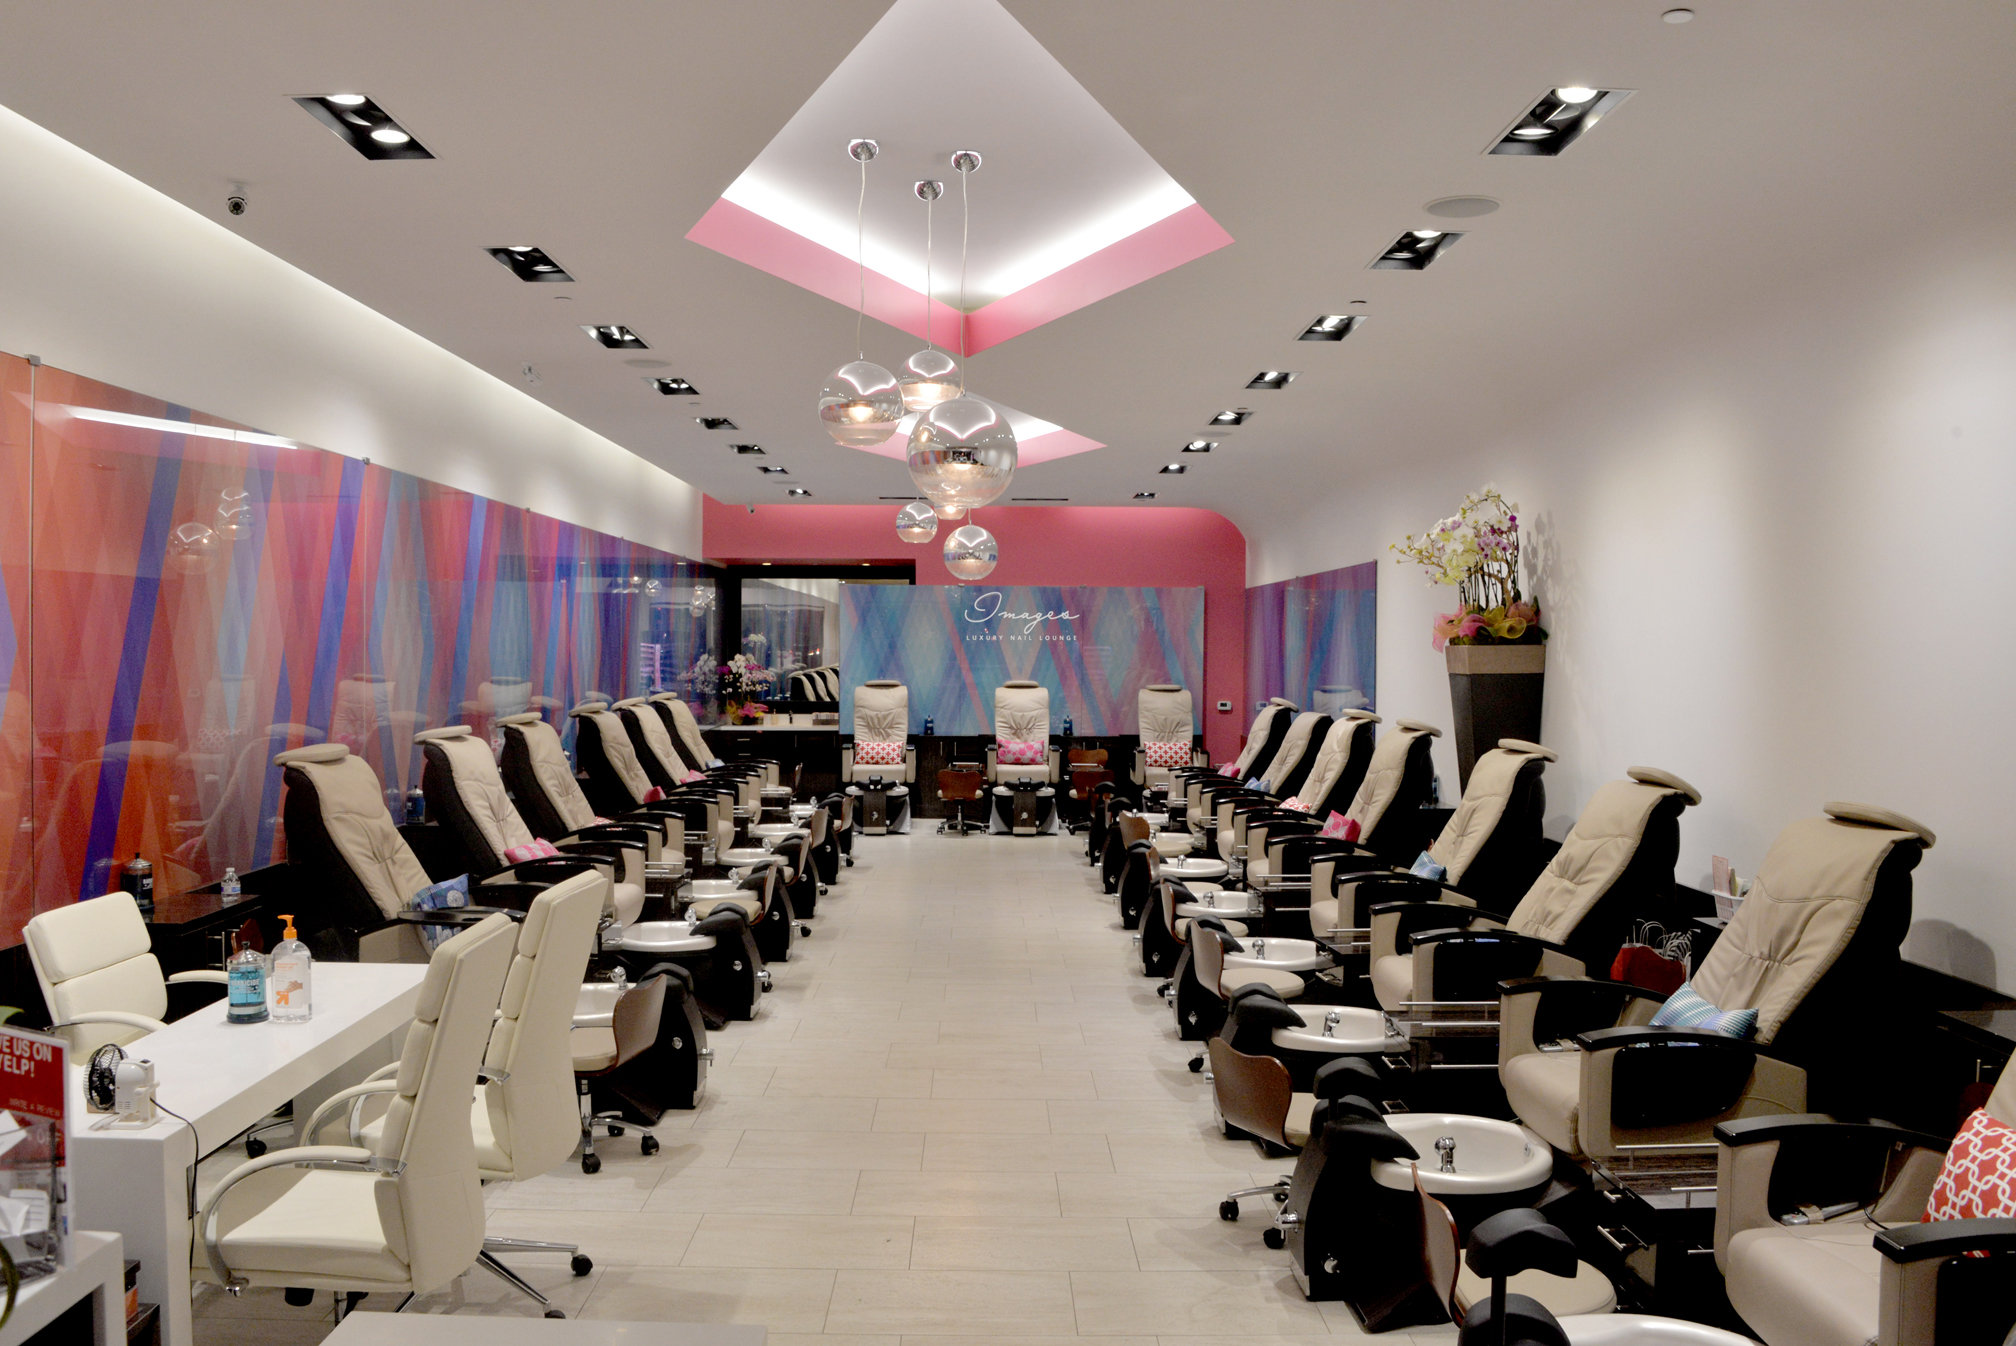 Luxury nail salon interior design -  Luxury Nail Salon Interior Design 39 Download